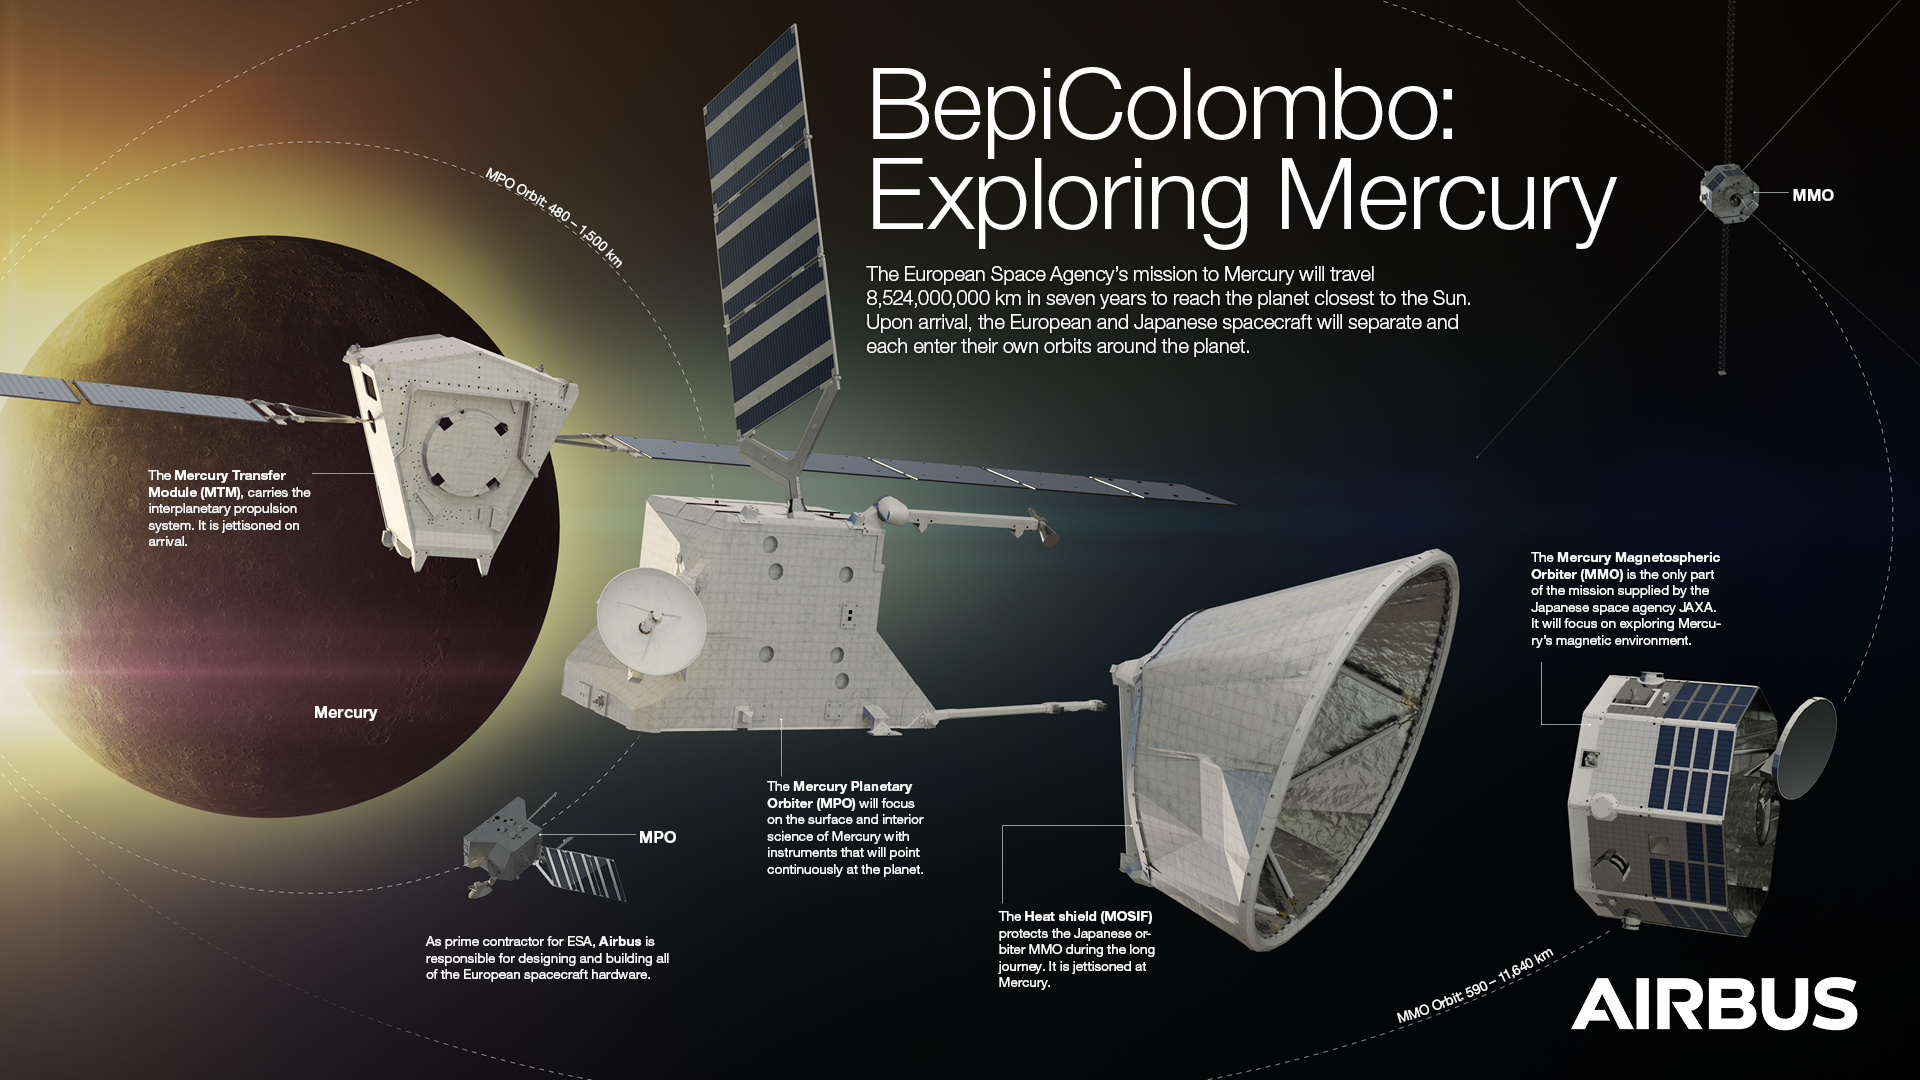 The BepiColombo spacecraft's mission to explore the planet Mercury is highlighted in this infographic.